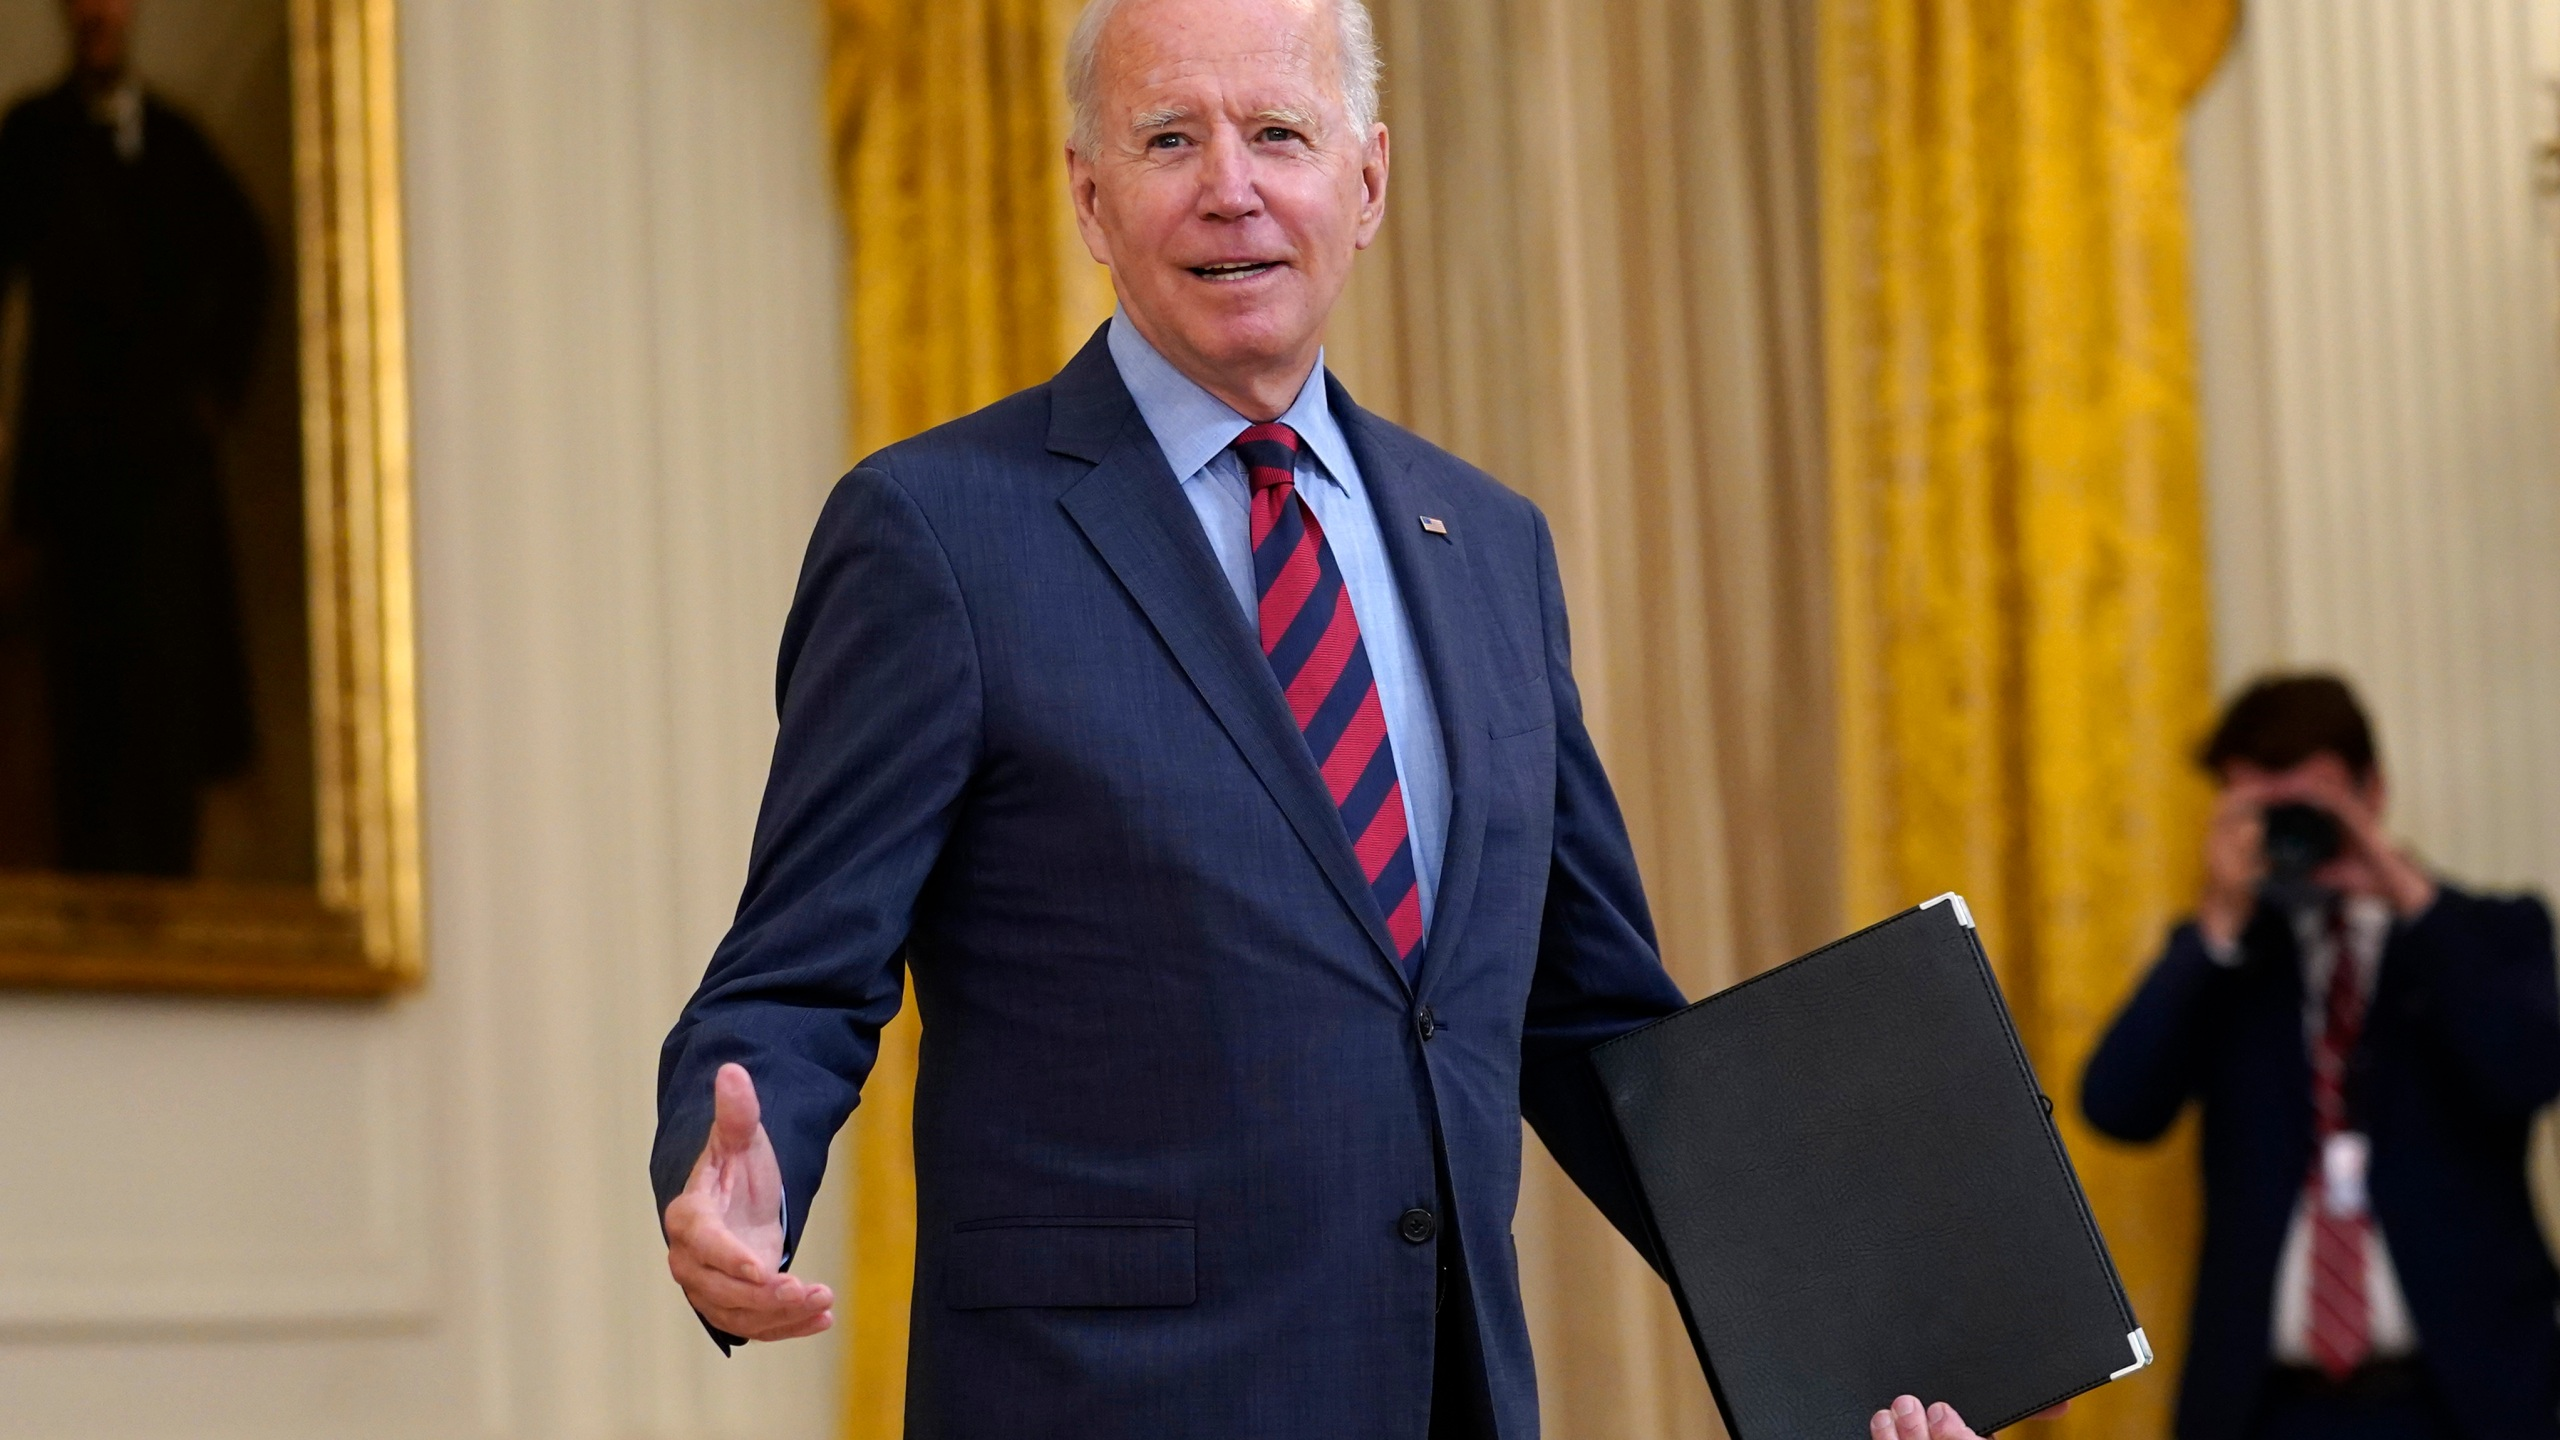 President Joe Biden answers a question from a reporter as he speaks about the coronavirus pandemic in the East Room of the White House on Aug. 3, 2021. (Susan Walsh/Associated Press)